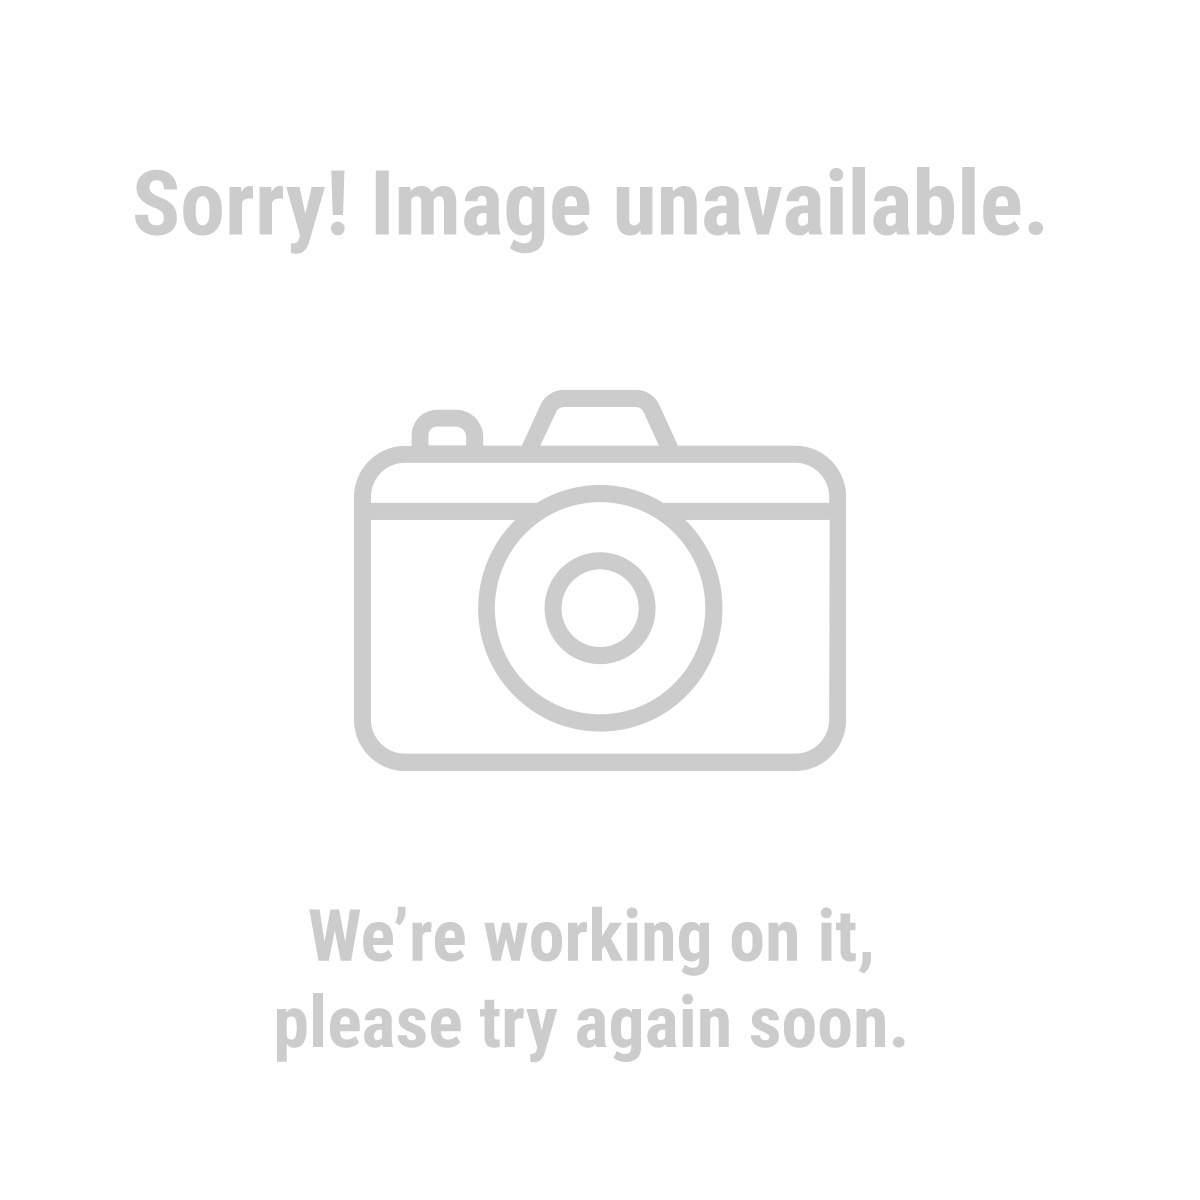 Chicago Electric Welding Systems 91214 Welding Helmet, Auto Darkening with Blue Flame Design